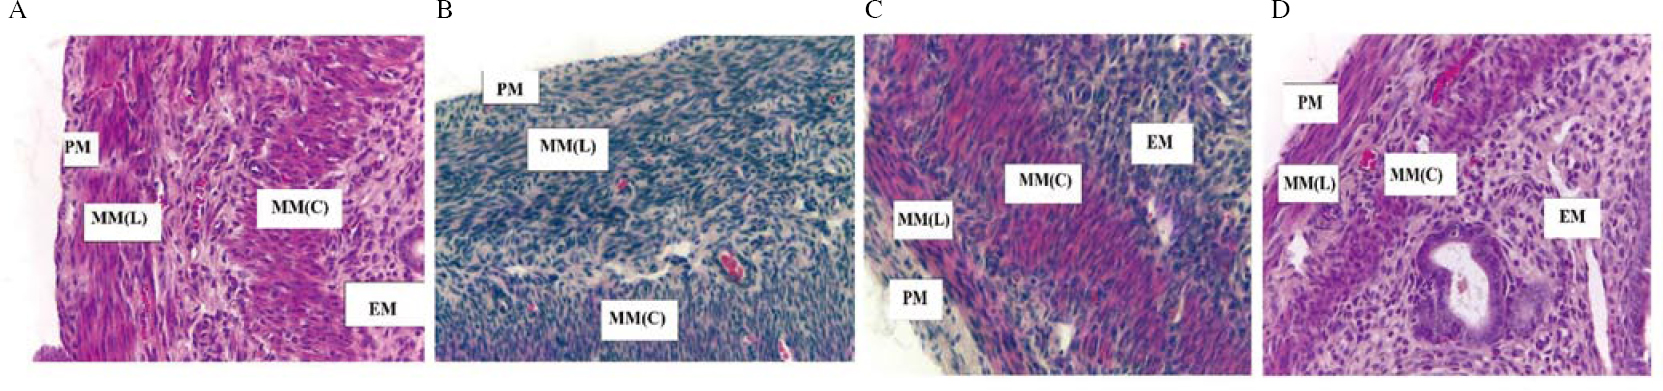 Figure 3: Hematoxylin and eosin-stained tissue section of myometrium at 400× magnification. Mice were administered with (A) vehicle control (VC), (B) BPA, (C) <i>Gracilaria changii</i> (GC) and (D) GC + BPA. The different areas of uterus in the image are labeled with PM as perimetrium, MM(L) as longitudinal myometrium, MM(C) as circular myometrium, and EM as endometrium (<i>n</i>=8)